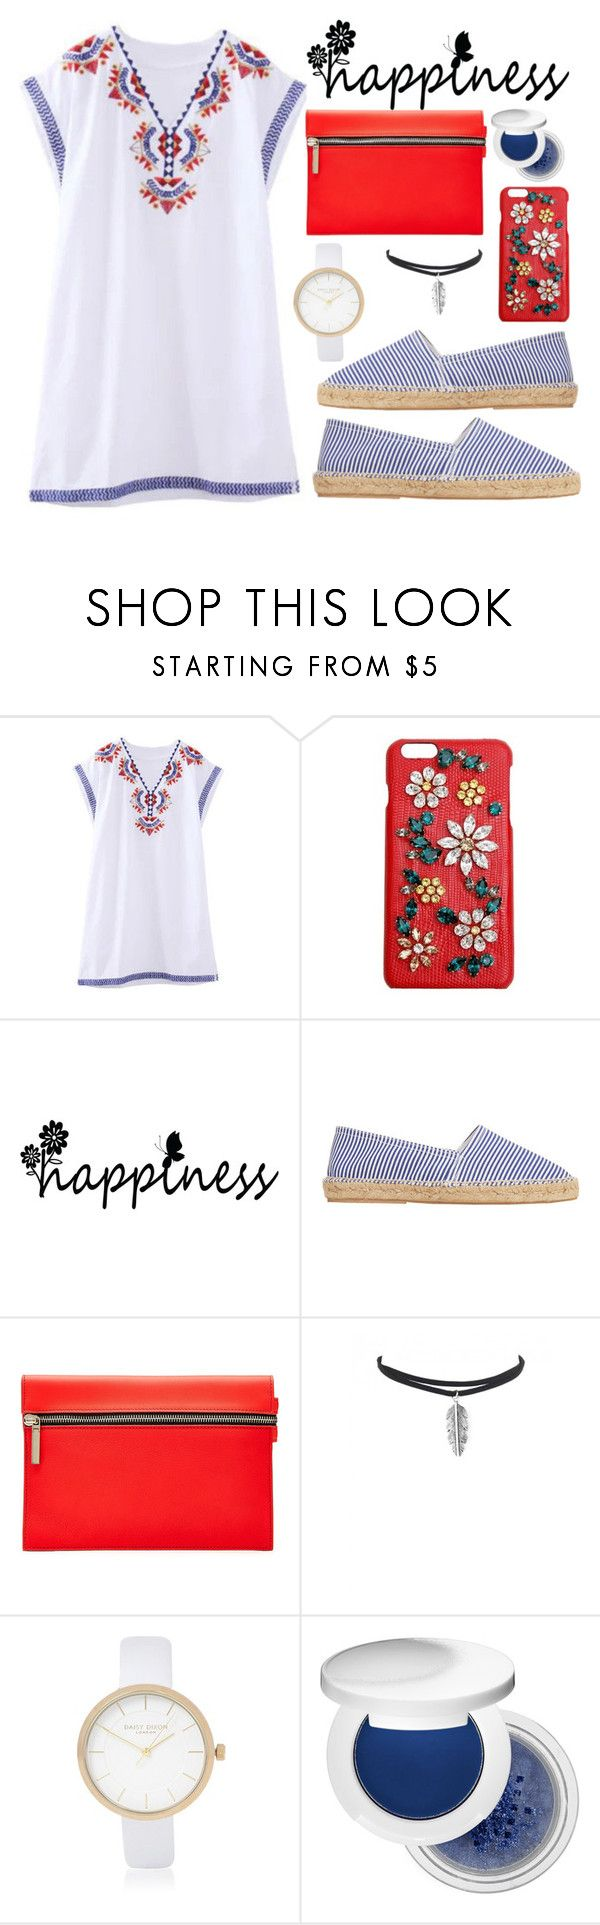 """""""Casual"""" by steviepumpkin ❤ liked on Polyvore featuring Dolce&Gabbana, MANGO, Victoria Beckham, River Island and Estée Lauder"""